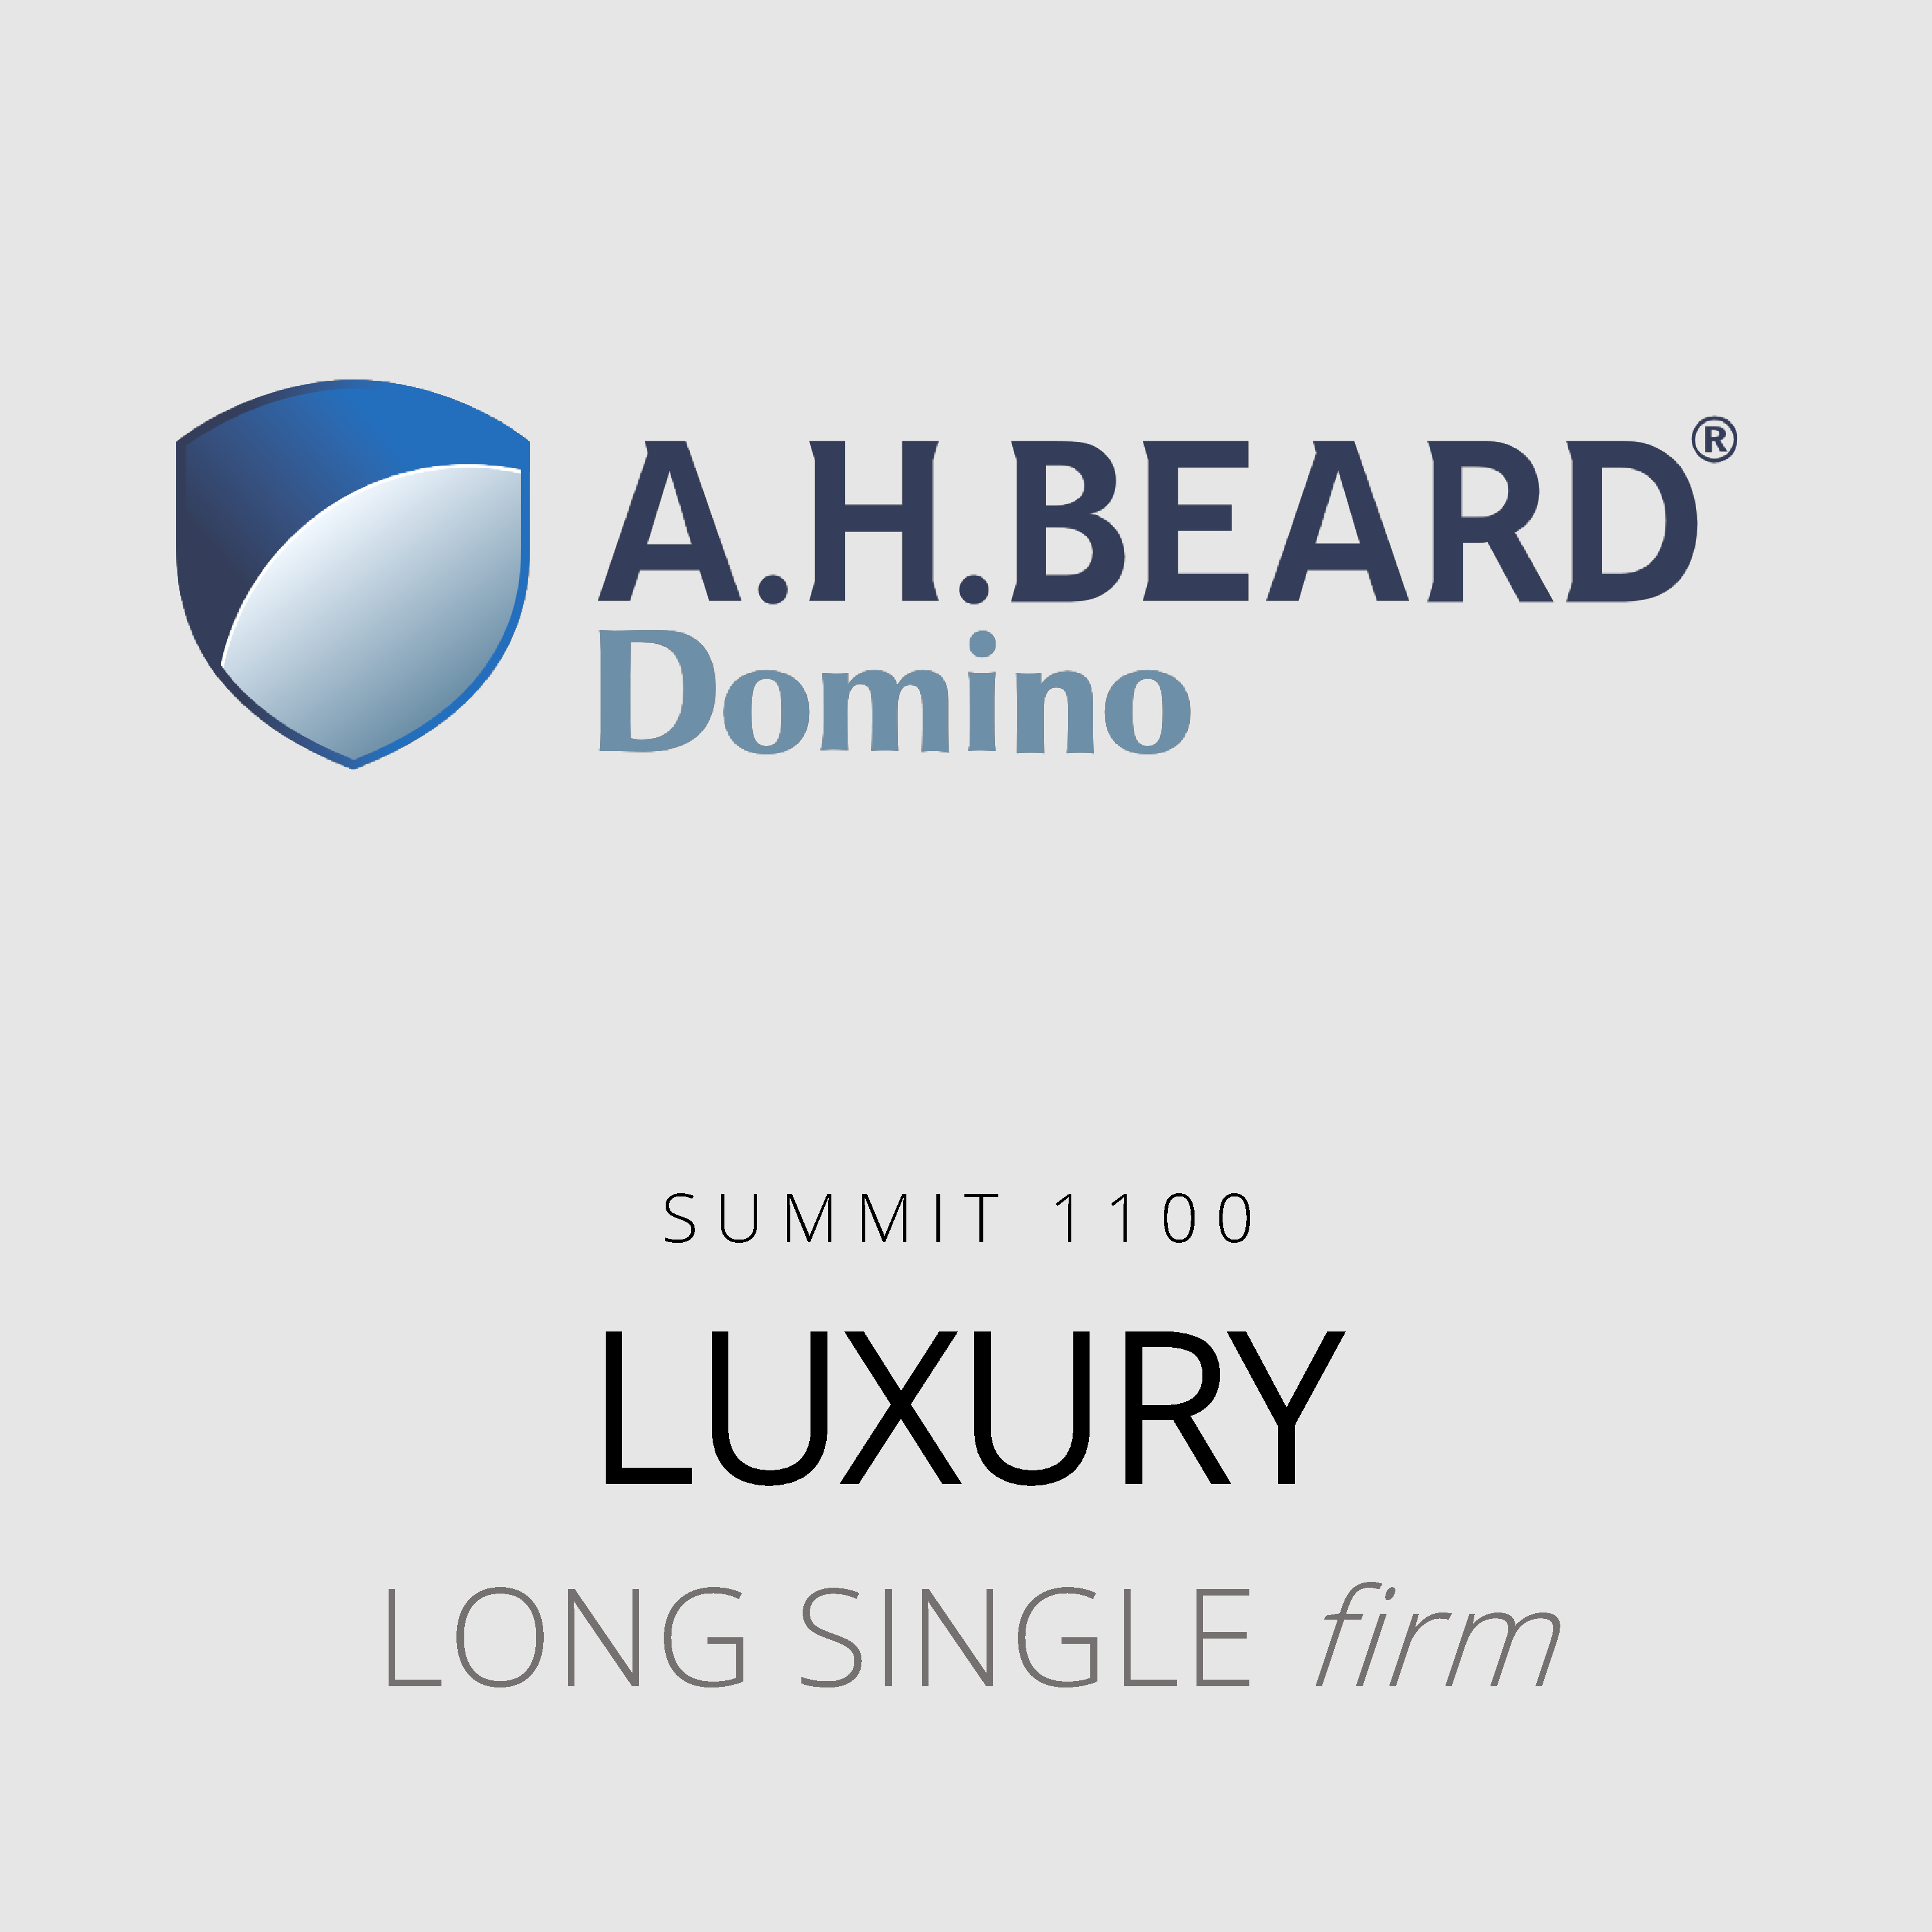 AH Beard Domino – Luxury – Summit 1100 – Long Single Firm Mattress